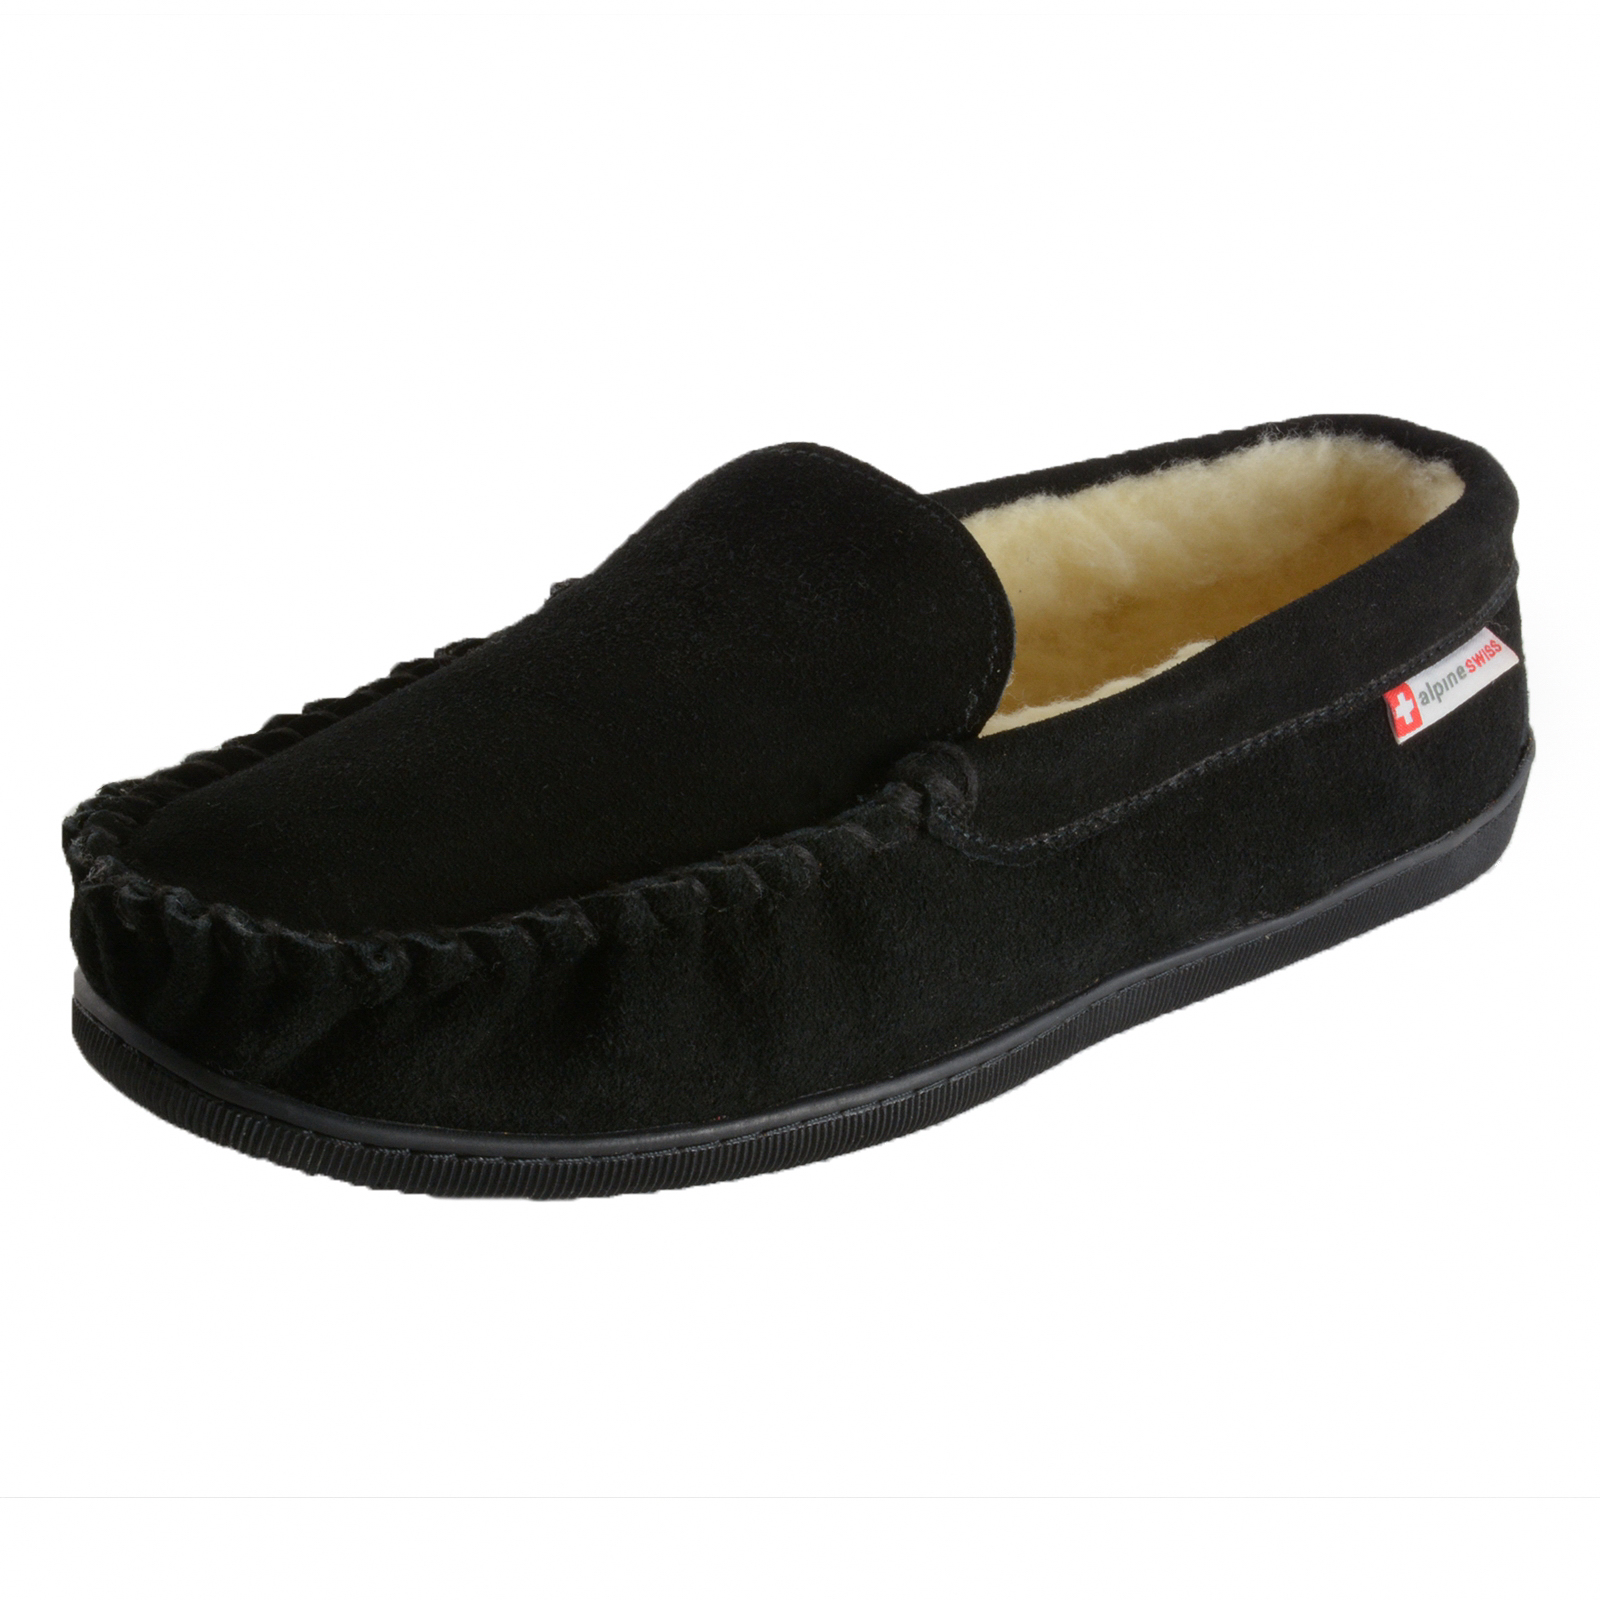 Alpine Swiss Sabine Womens Suede Shearling Moccasin ...